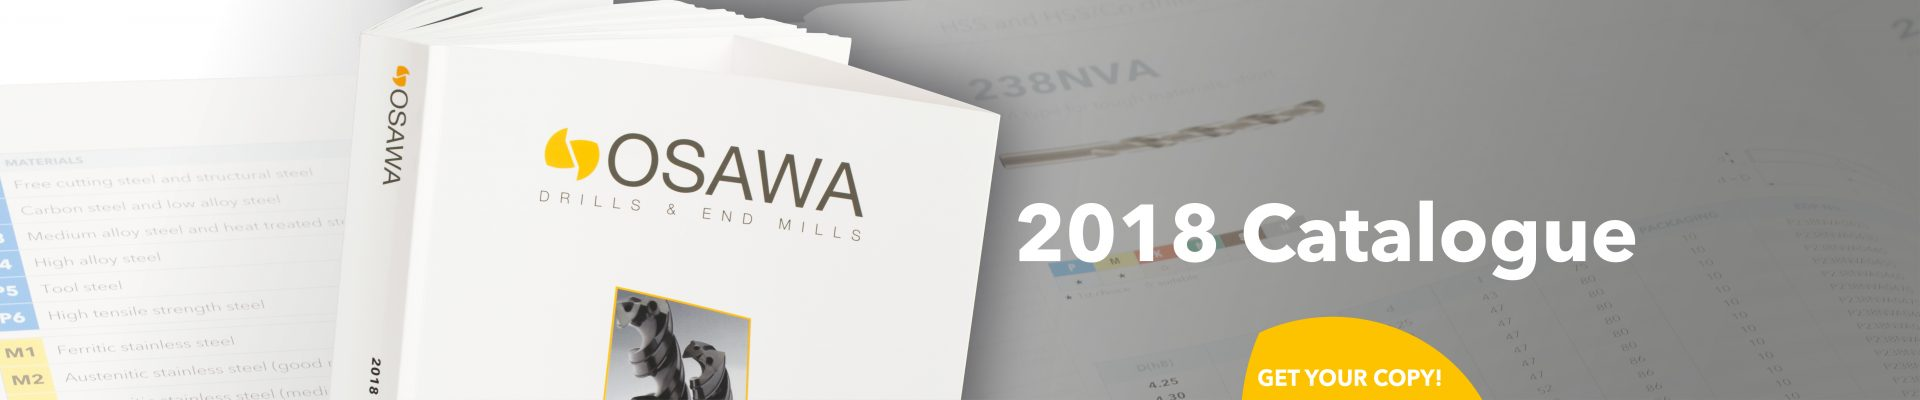 Get the 2018 Osawa Catalogue